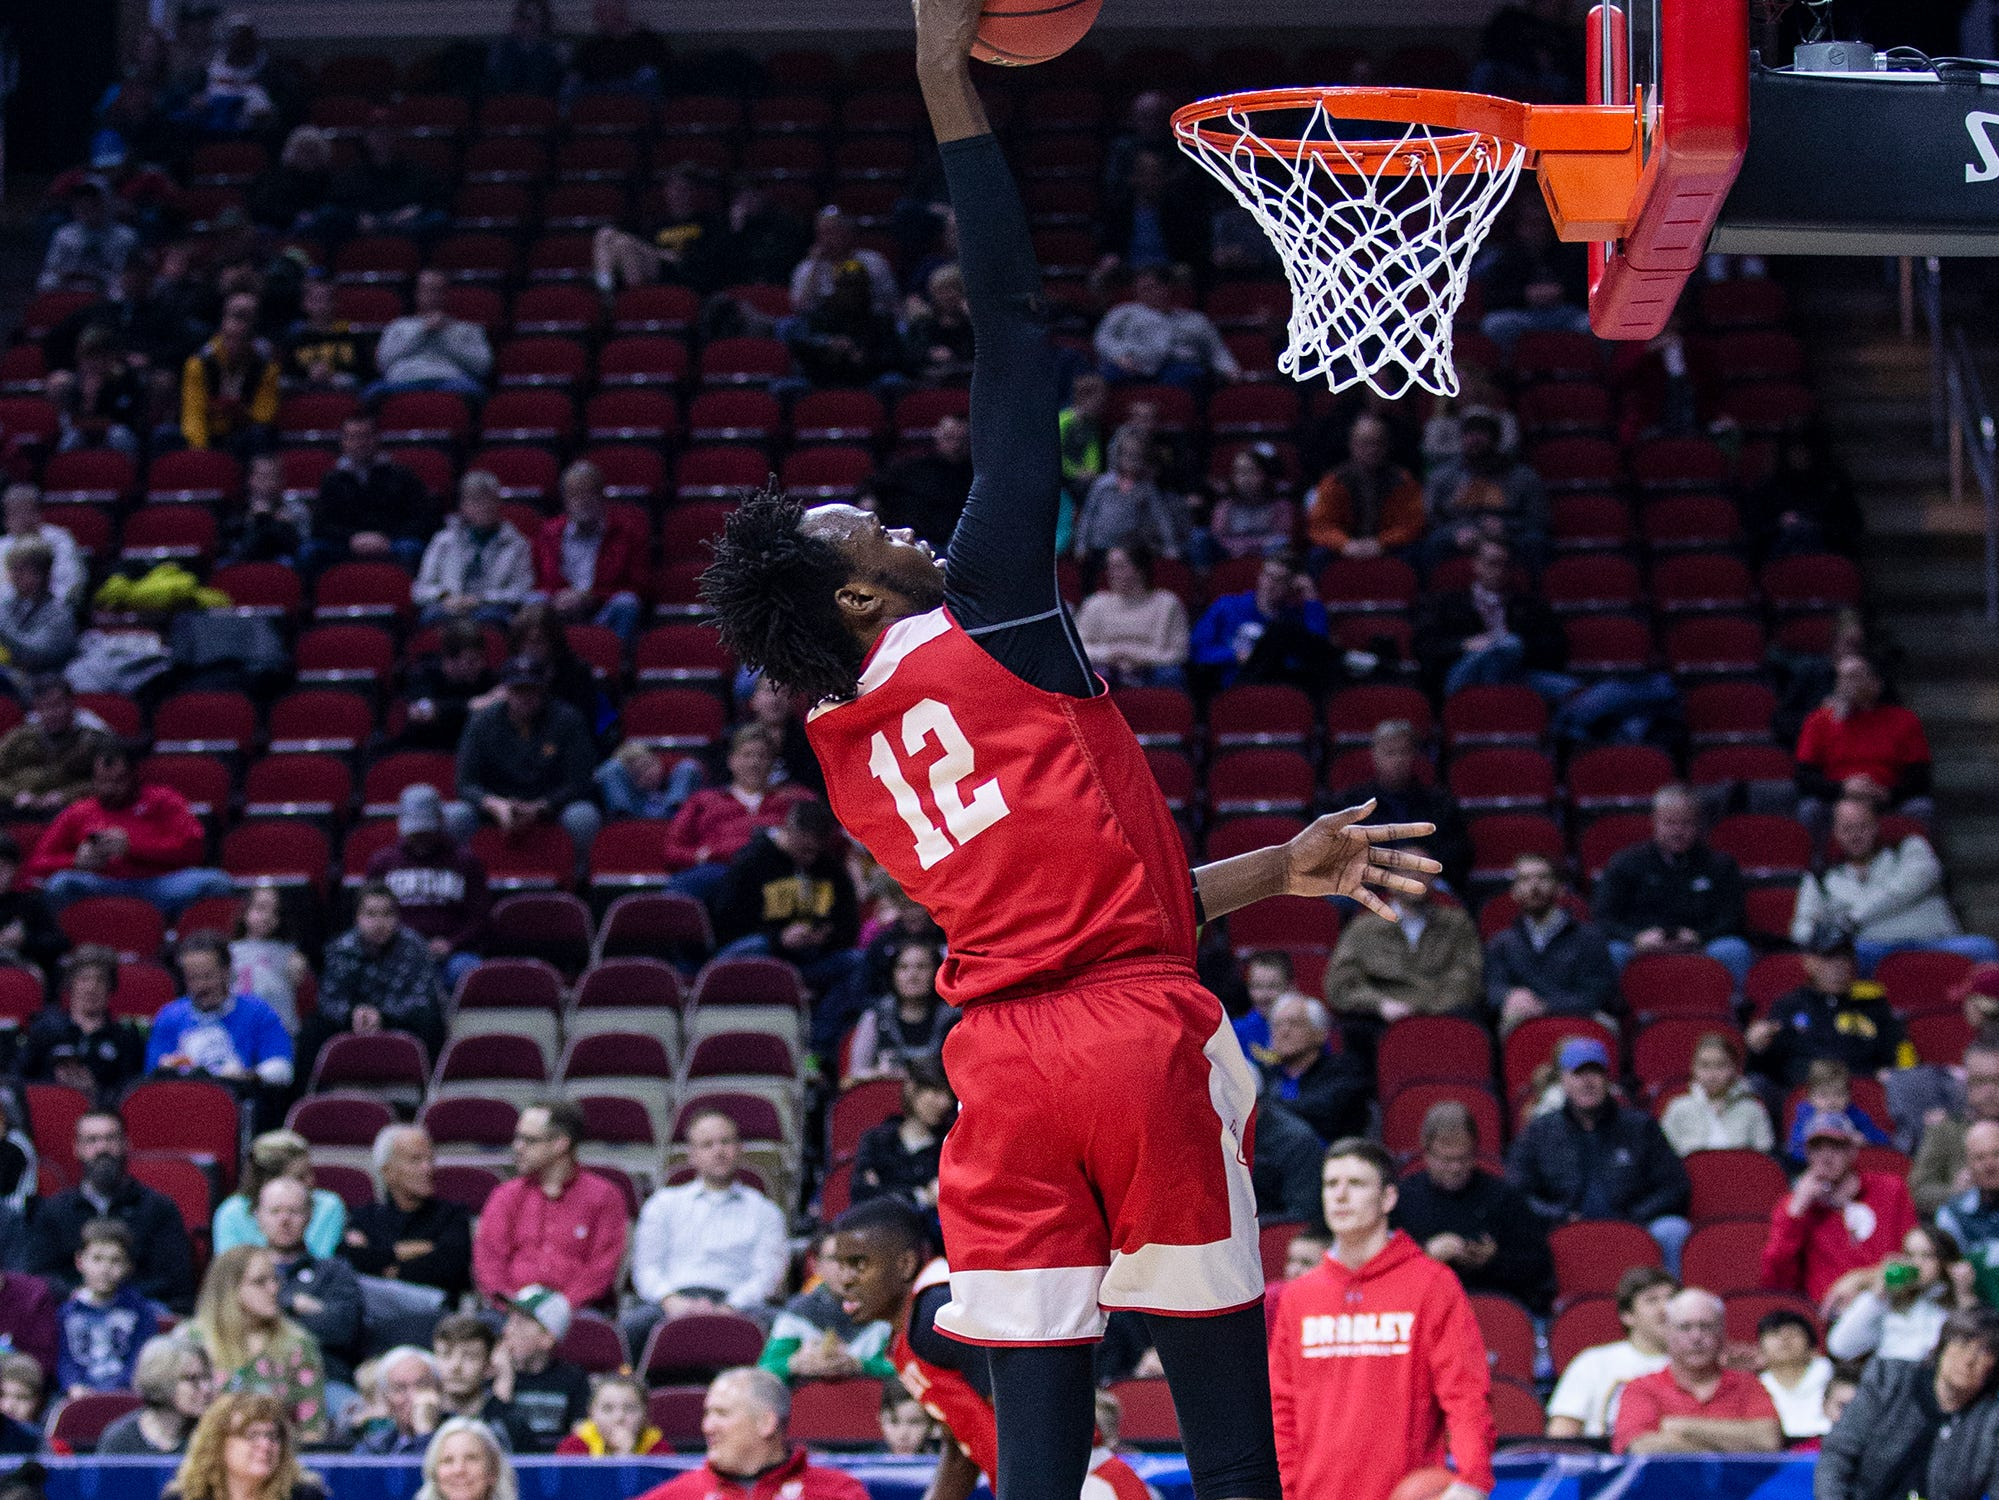 Bradley's Koch Bar shoots the ball during Bradley's open practice before the first round of the NCAA Men's Basketball Tournament on Wednesday, March 20, 2019, at Wells Fargo Arena in Des Moines, Iowa.